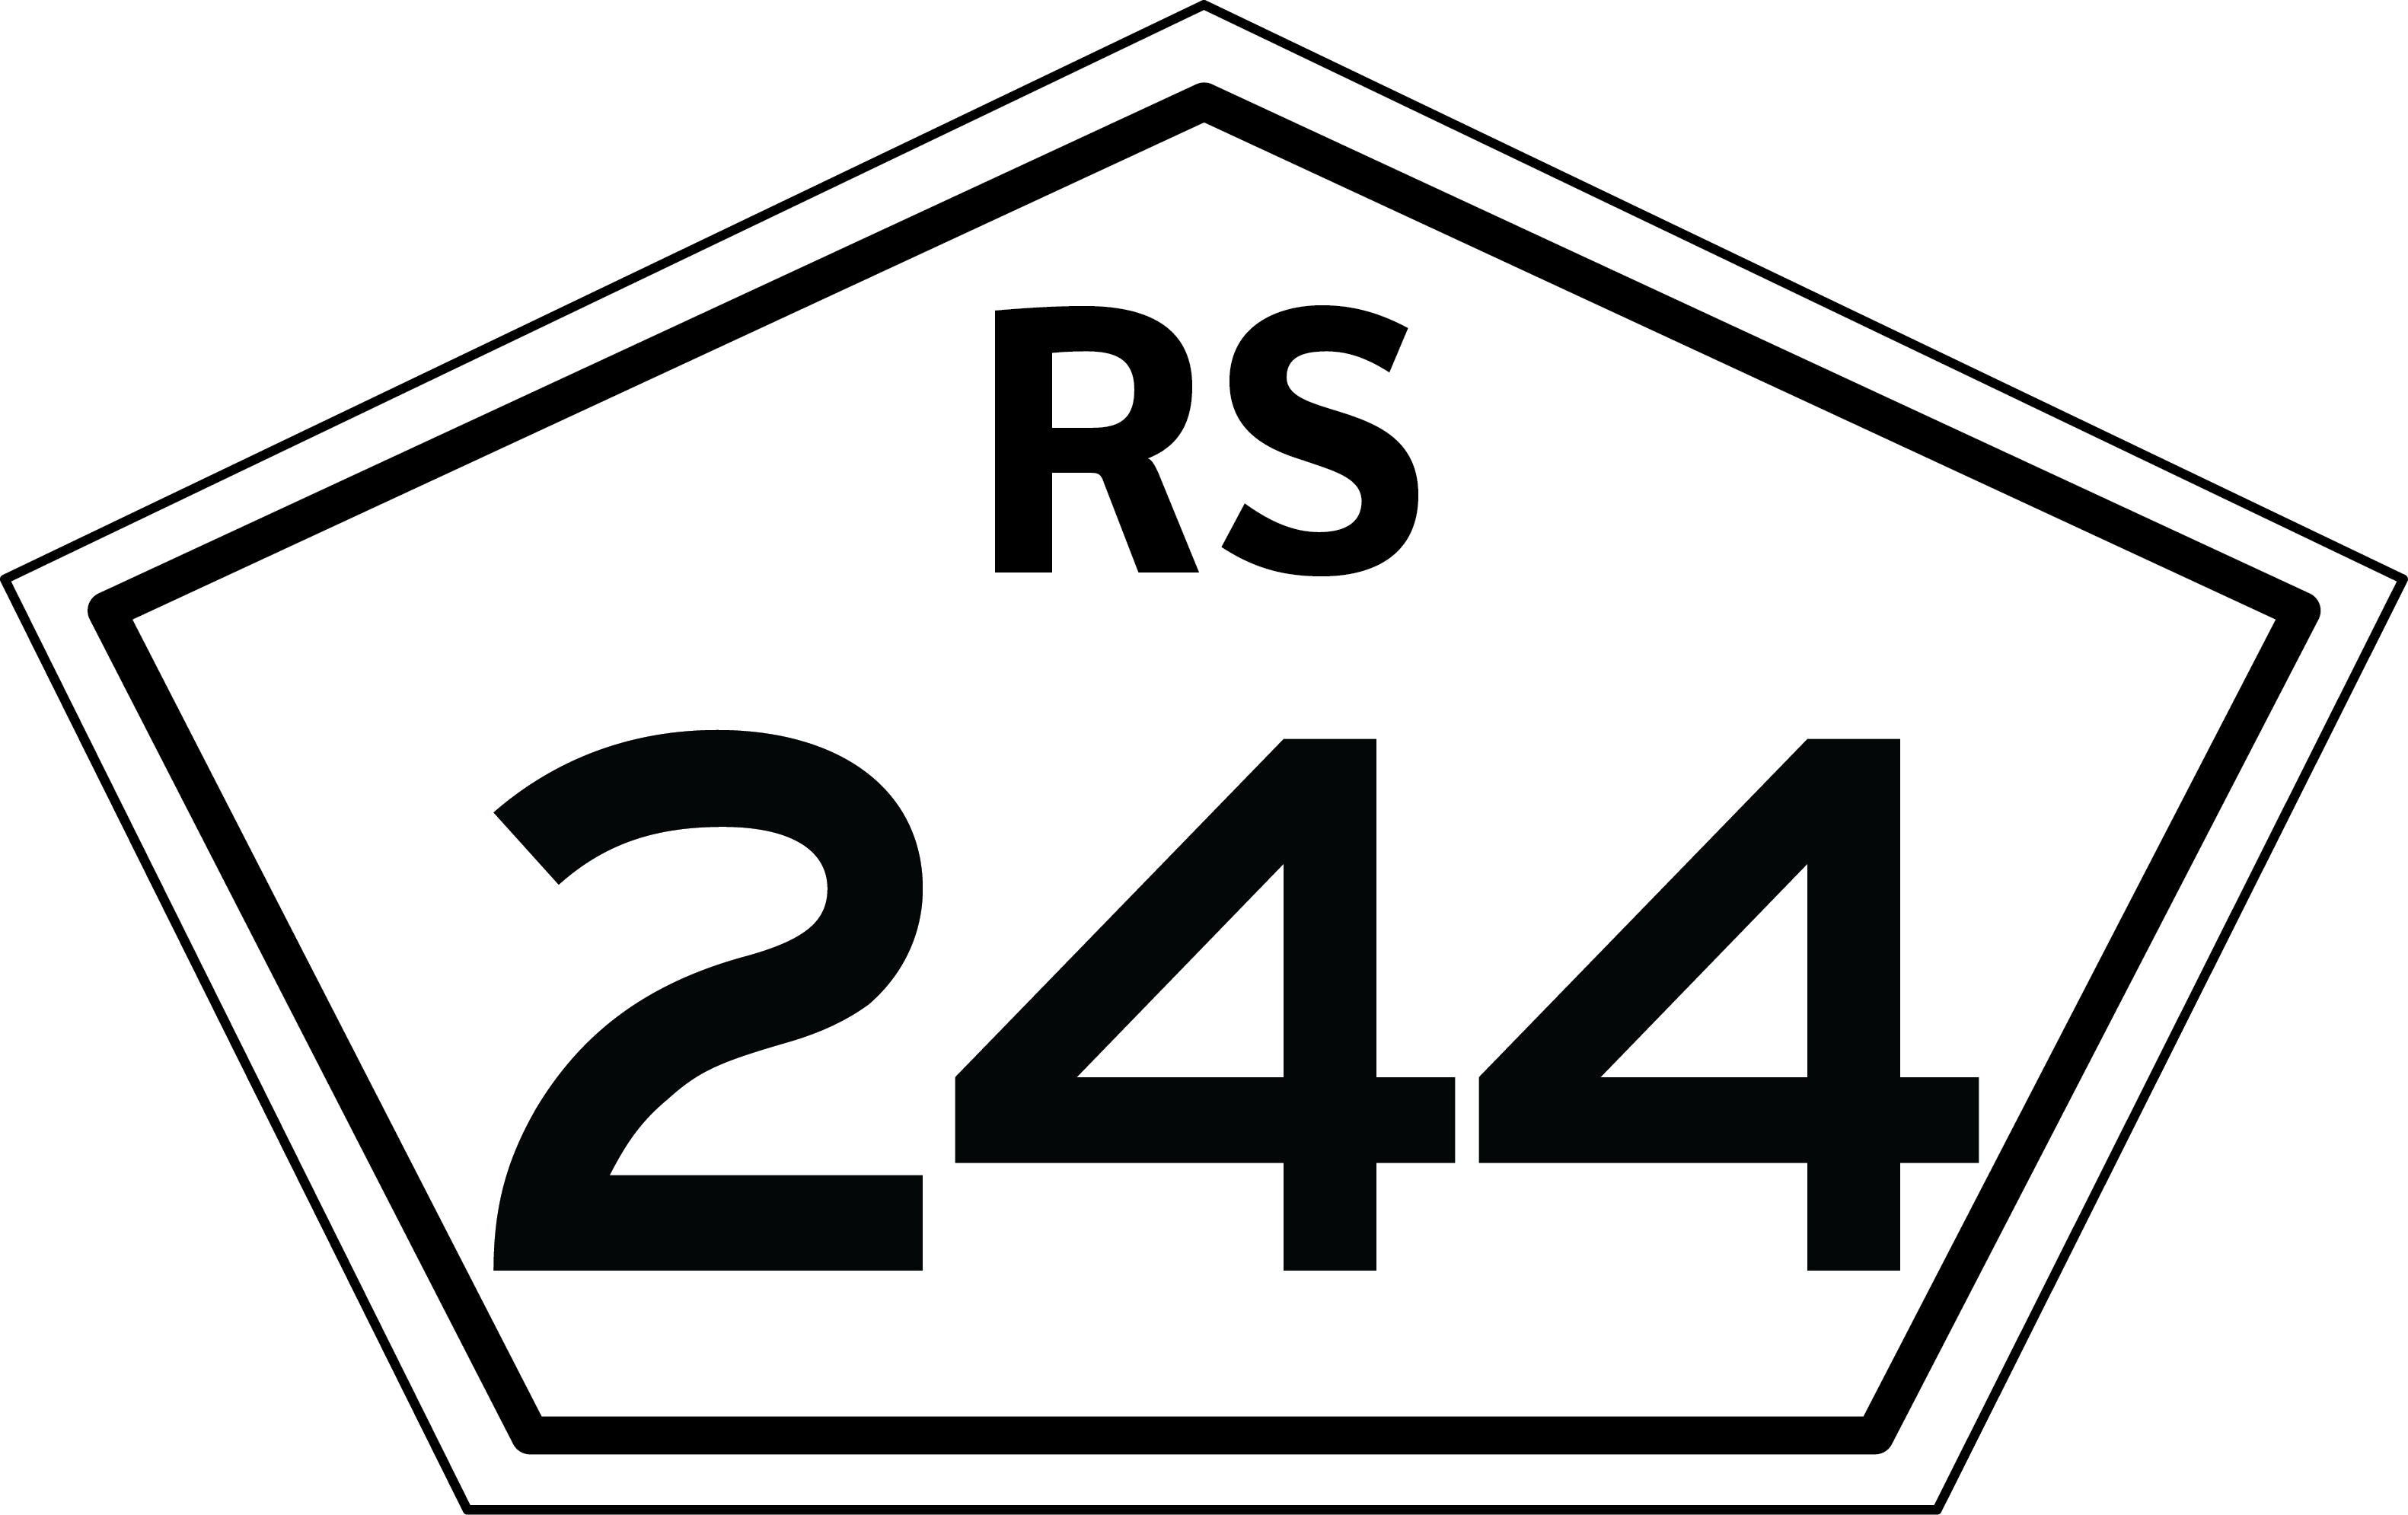 File:Rs-244 rs.png